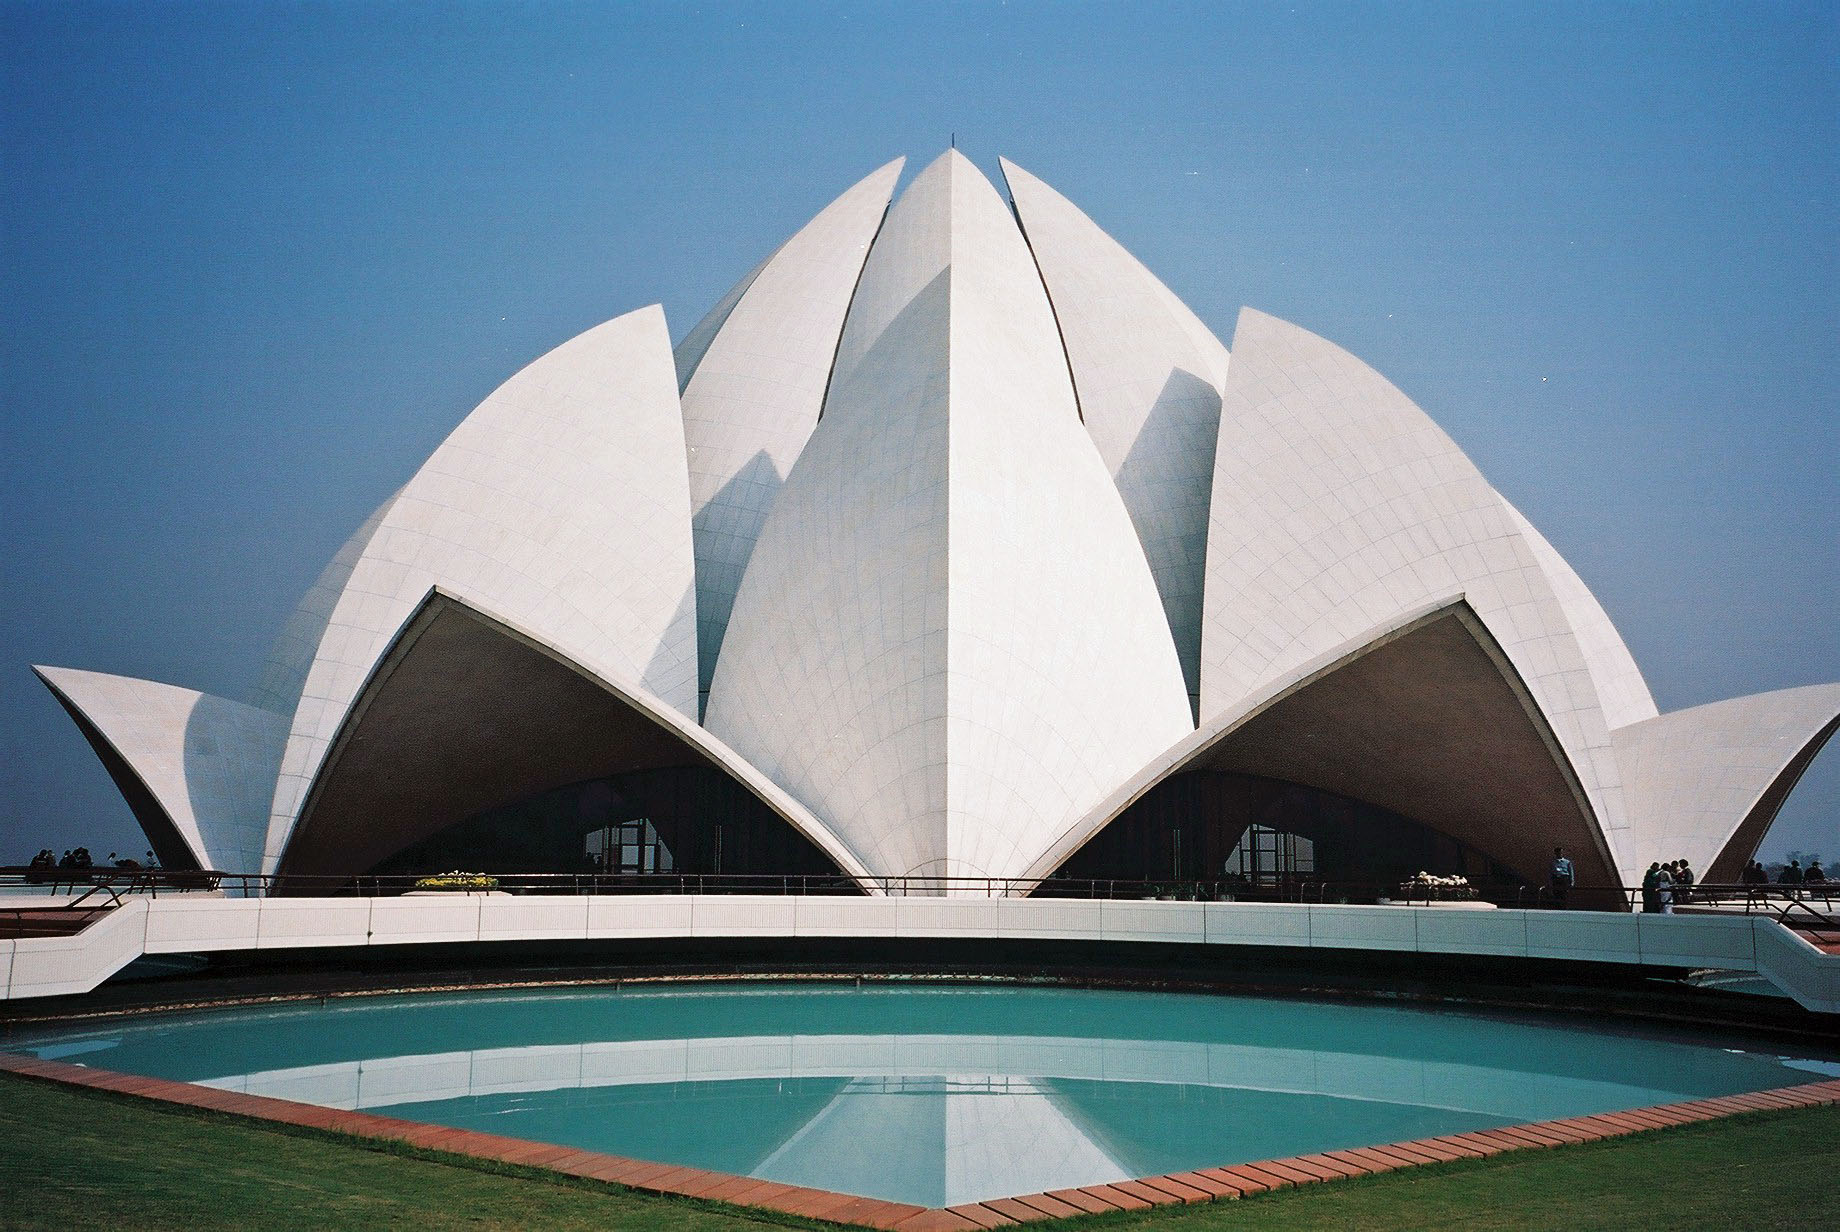 https://upload.wikimedia.org/wikipedia/commons/d/d3/Lotus_temple_Delhi.jpg